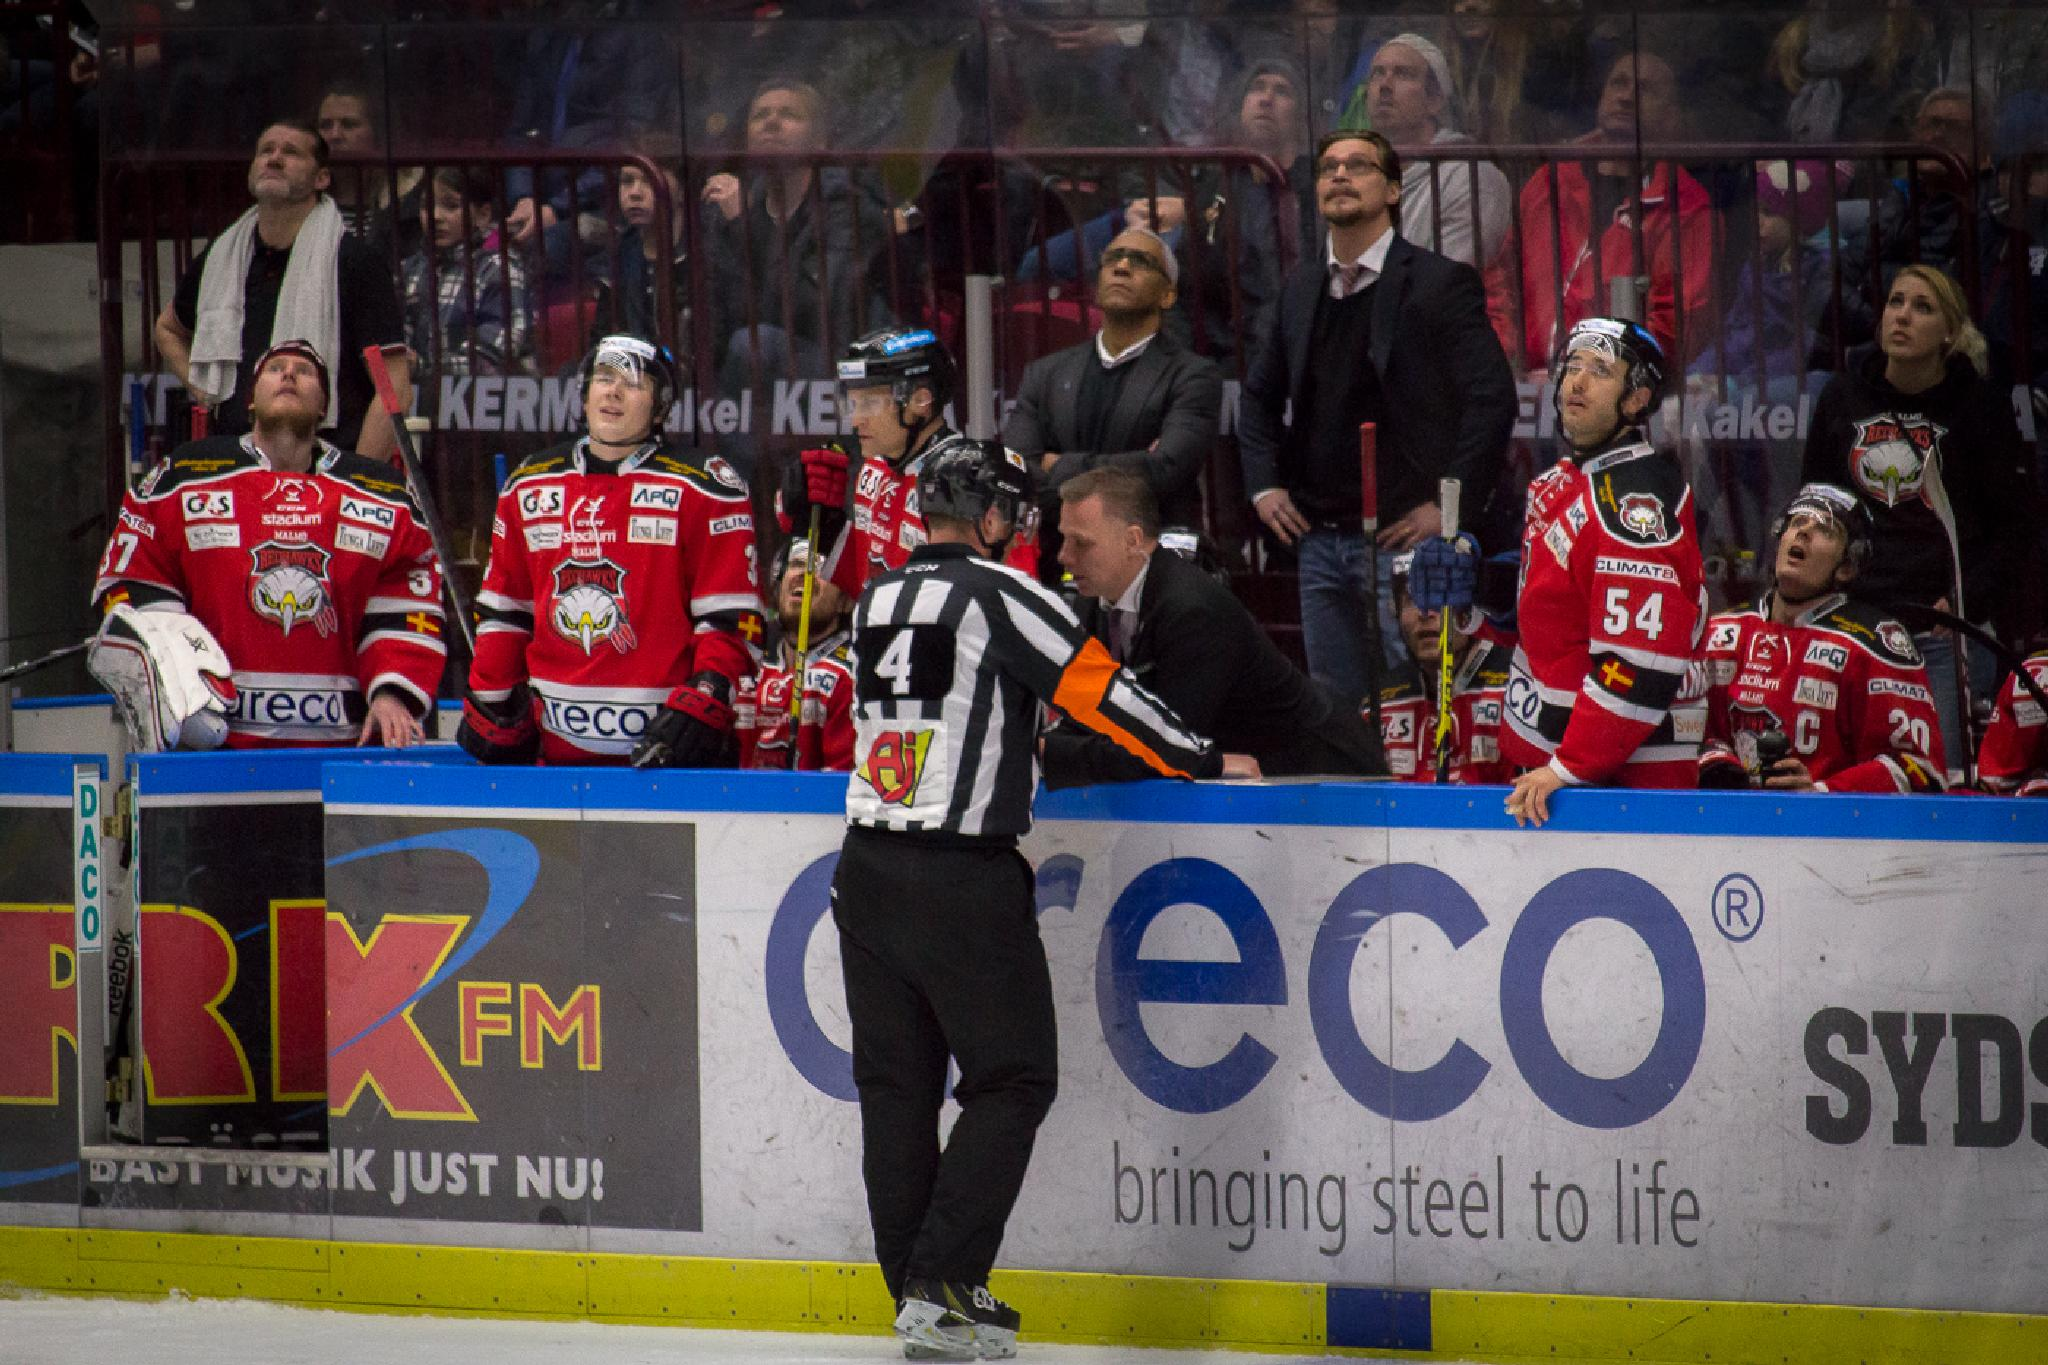 Goal under review, all eyes on the big screen. by Magnus Bengtsson